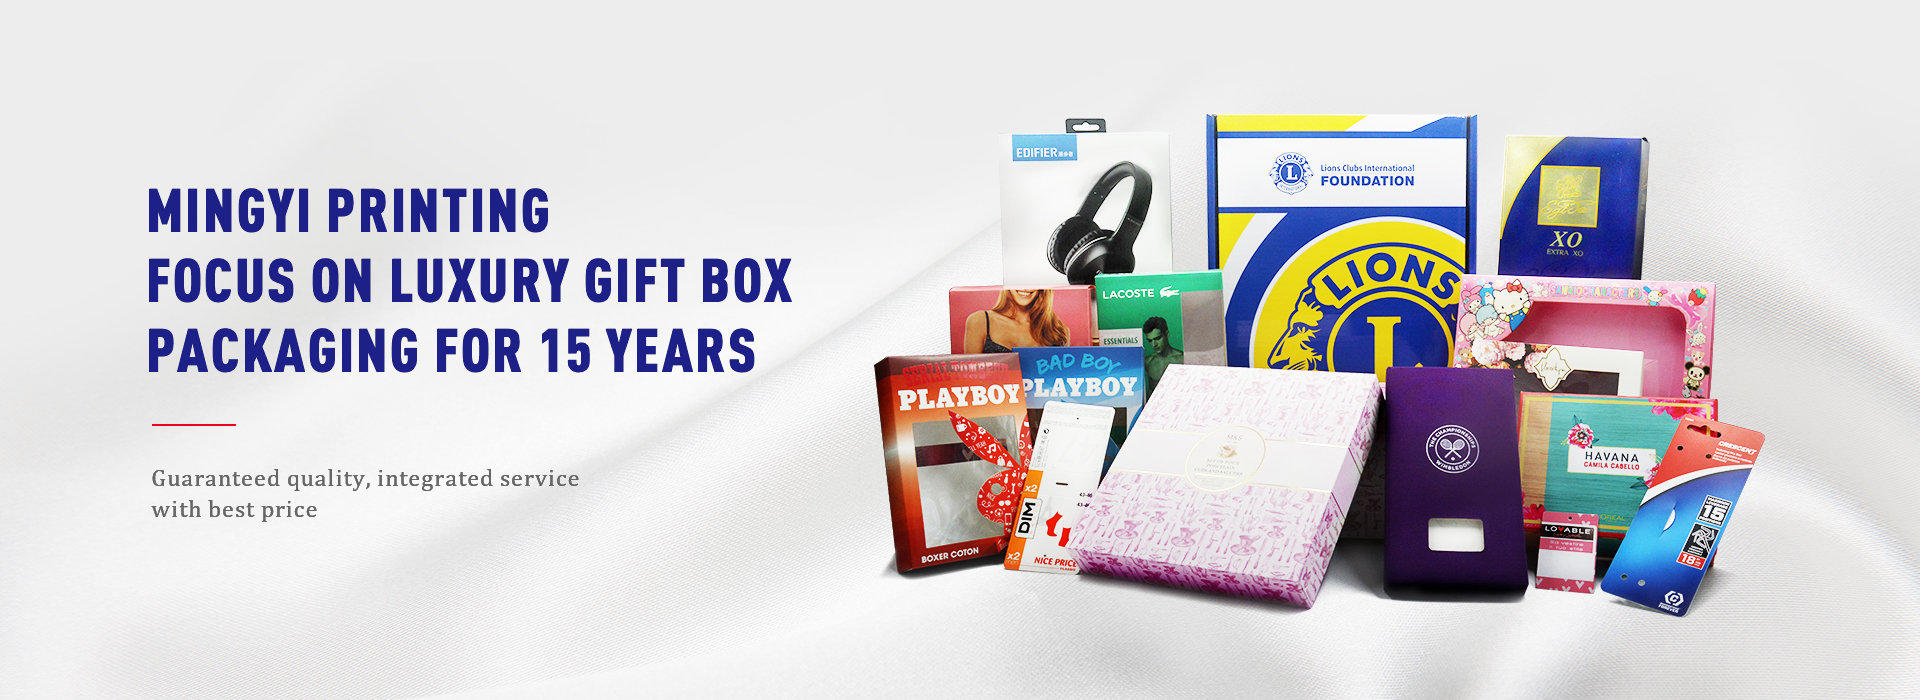 Paper Box Manufacturers, Packaging Box Suppliers, Gift Boxes Wholesale